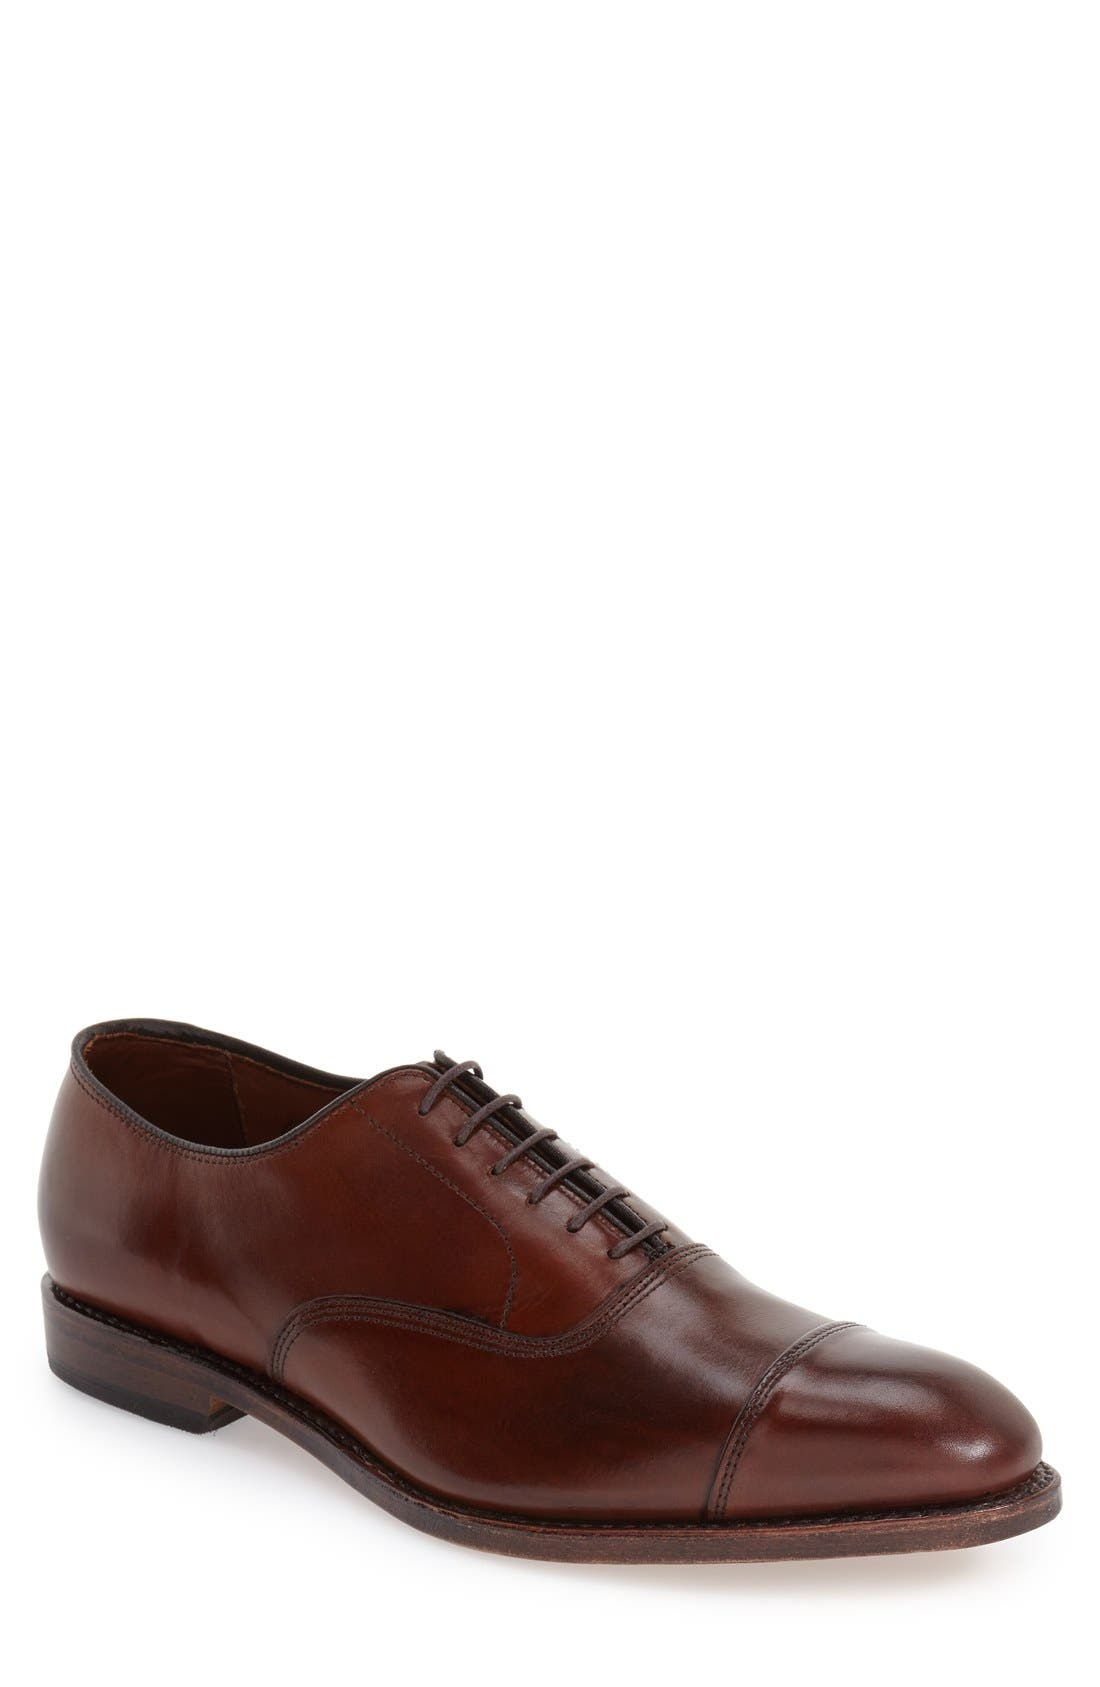 'Park Avenue' Cap Toe Oxford,                         Main,                         color, DARK CHILI BURNISHED